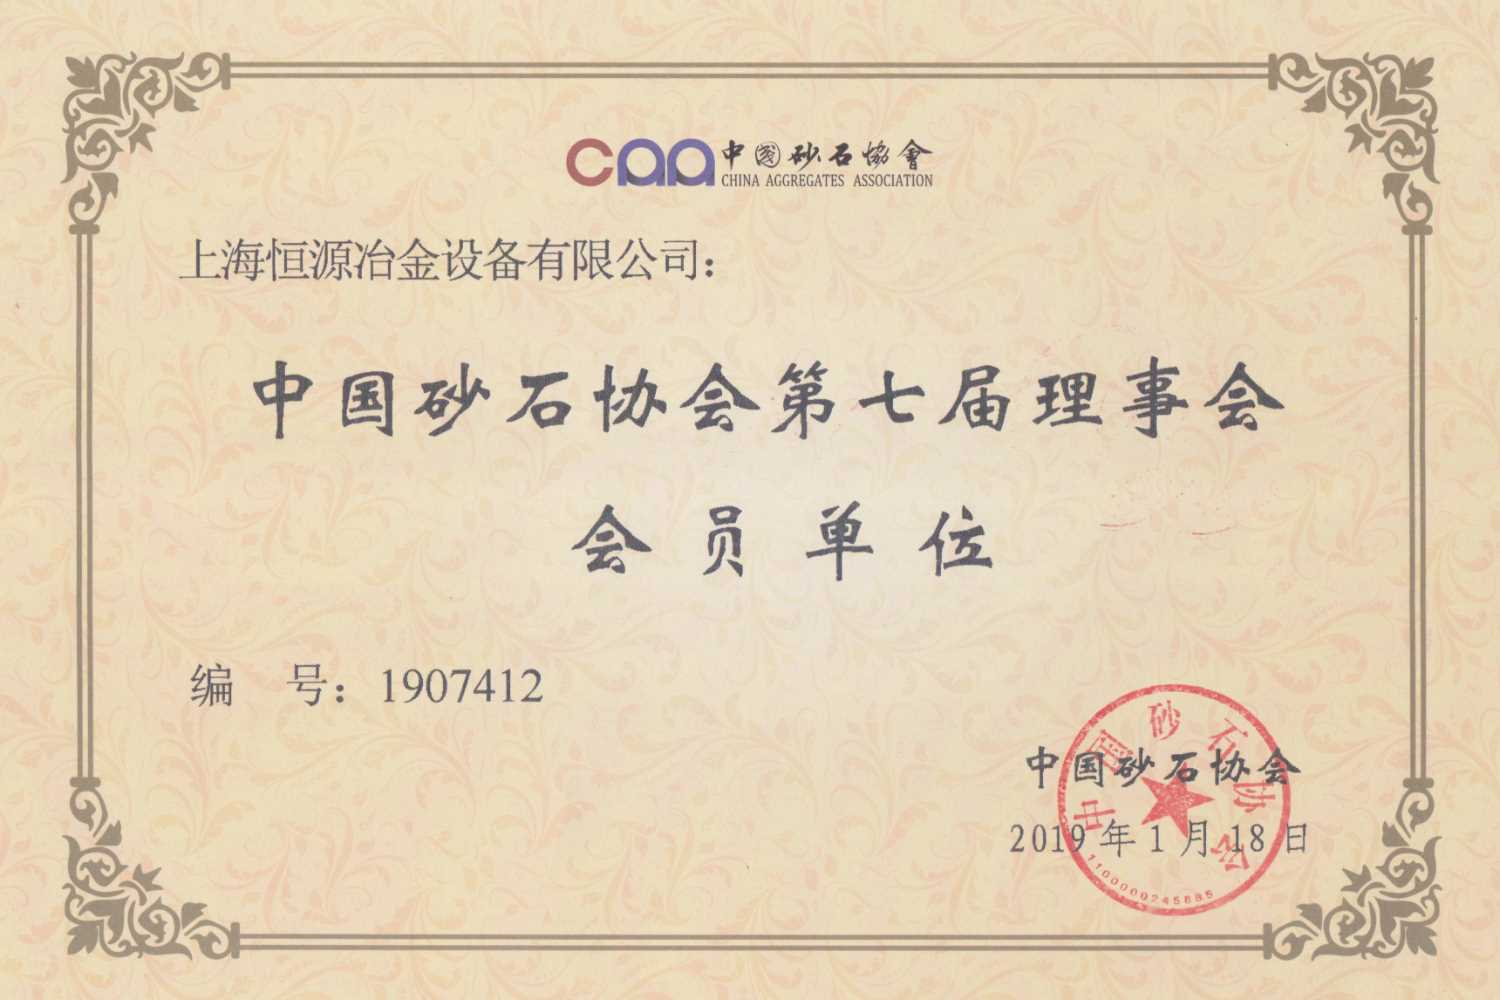 Member of China Sandstone Association